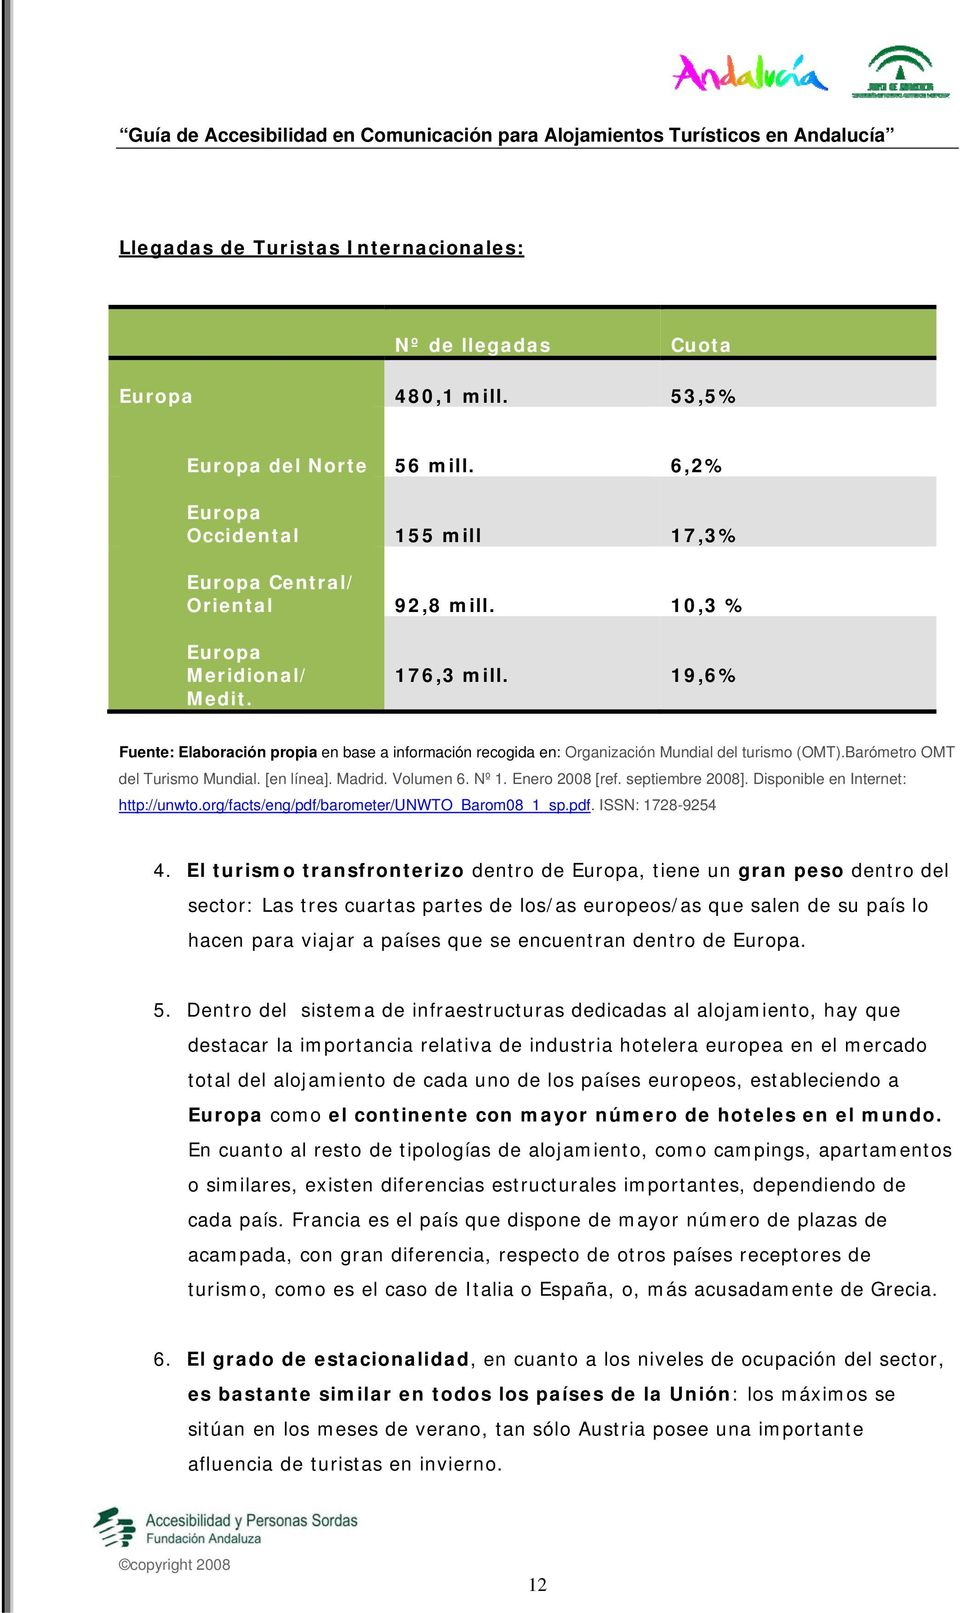 Madrid. Volumen 6. Nº 1. Enero 2008 [ref. septiembre 2008]. Disponible en Internet: http://unwto.org/facts/eng/pdf/barometer/unwto_barom08_1_sp.pdf. ISSN: 1728-9254 4.